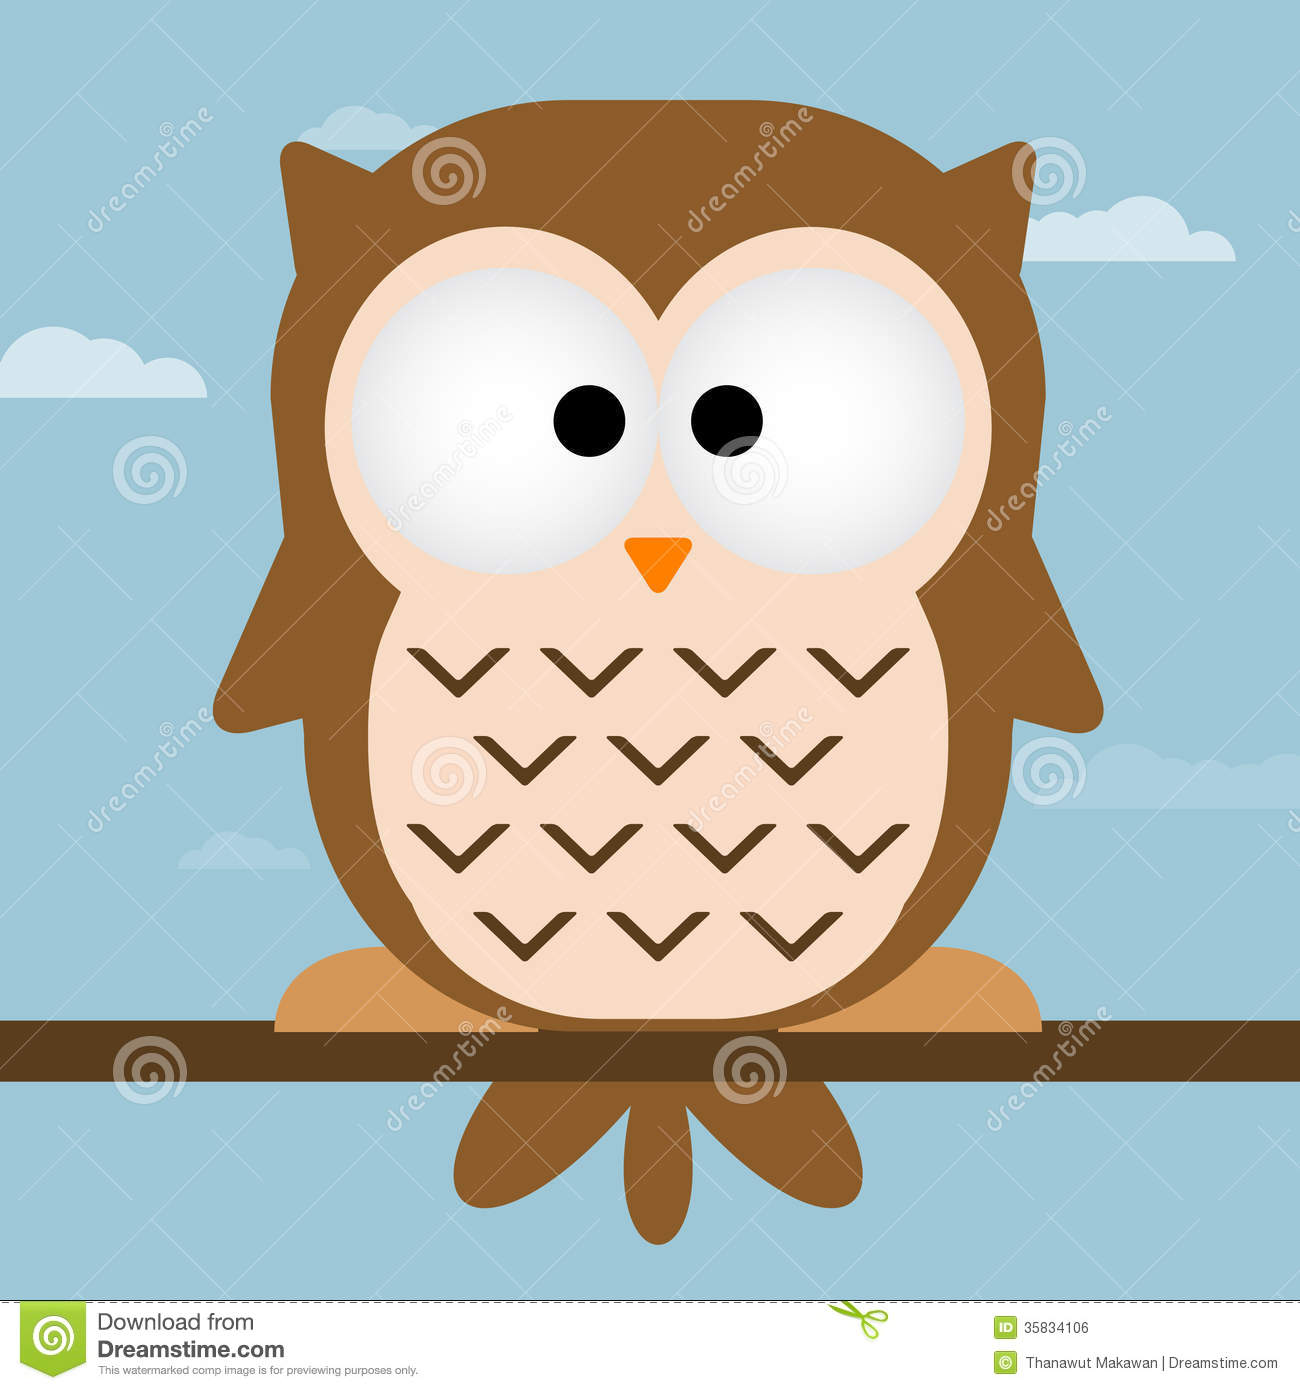 cute cartoon owl wallpaper wallpapersafari free owl on a branch clipart owl on branch clipart black and white